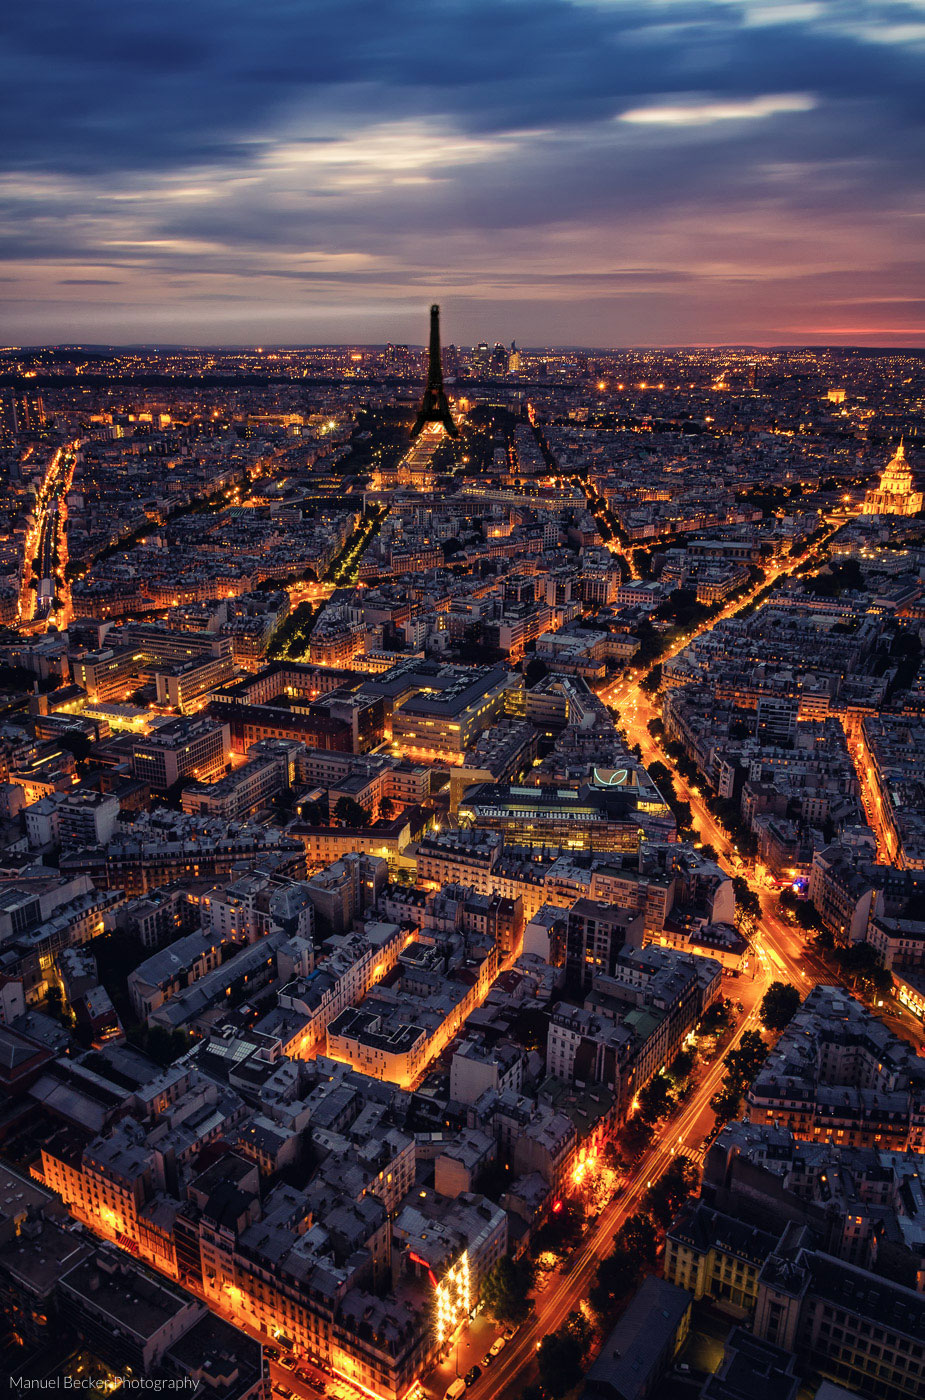 56th floor of Tour Montparnasse, Paris, France